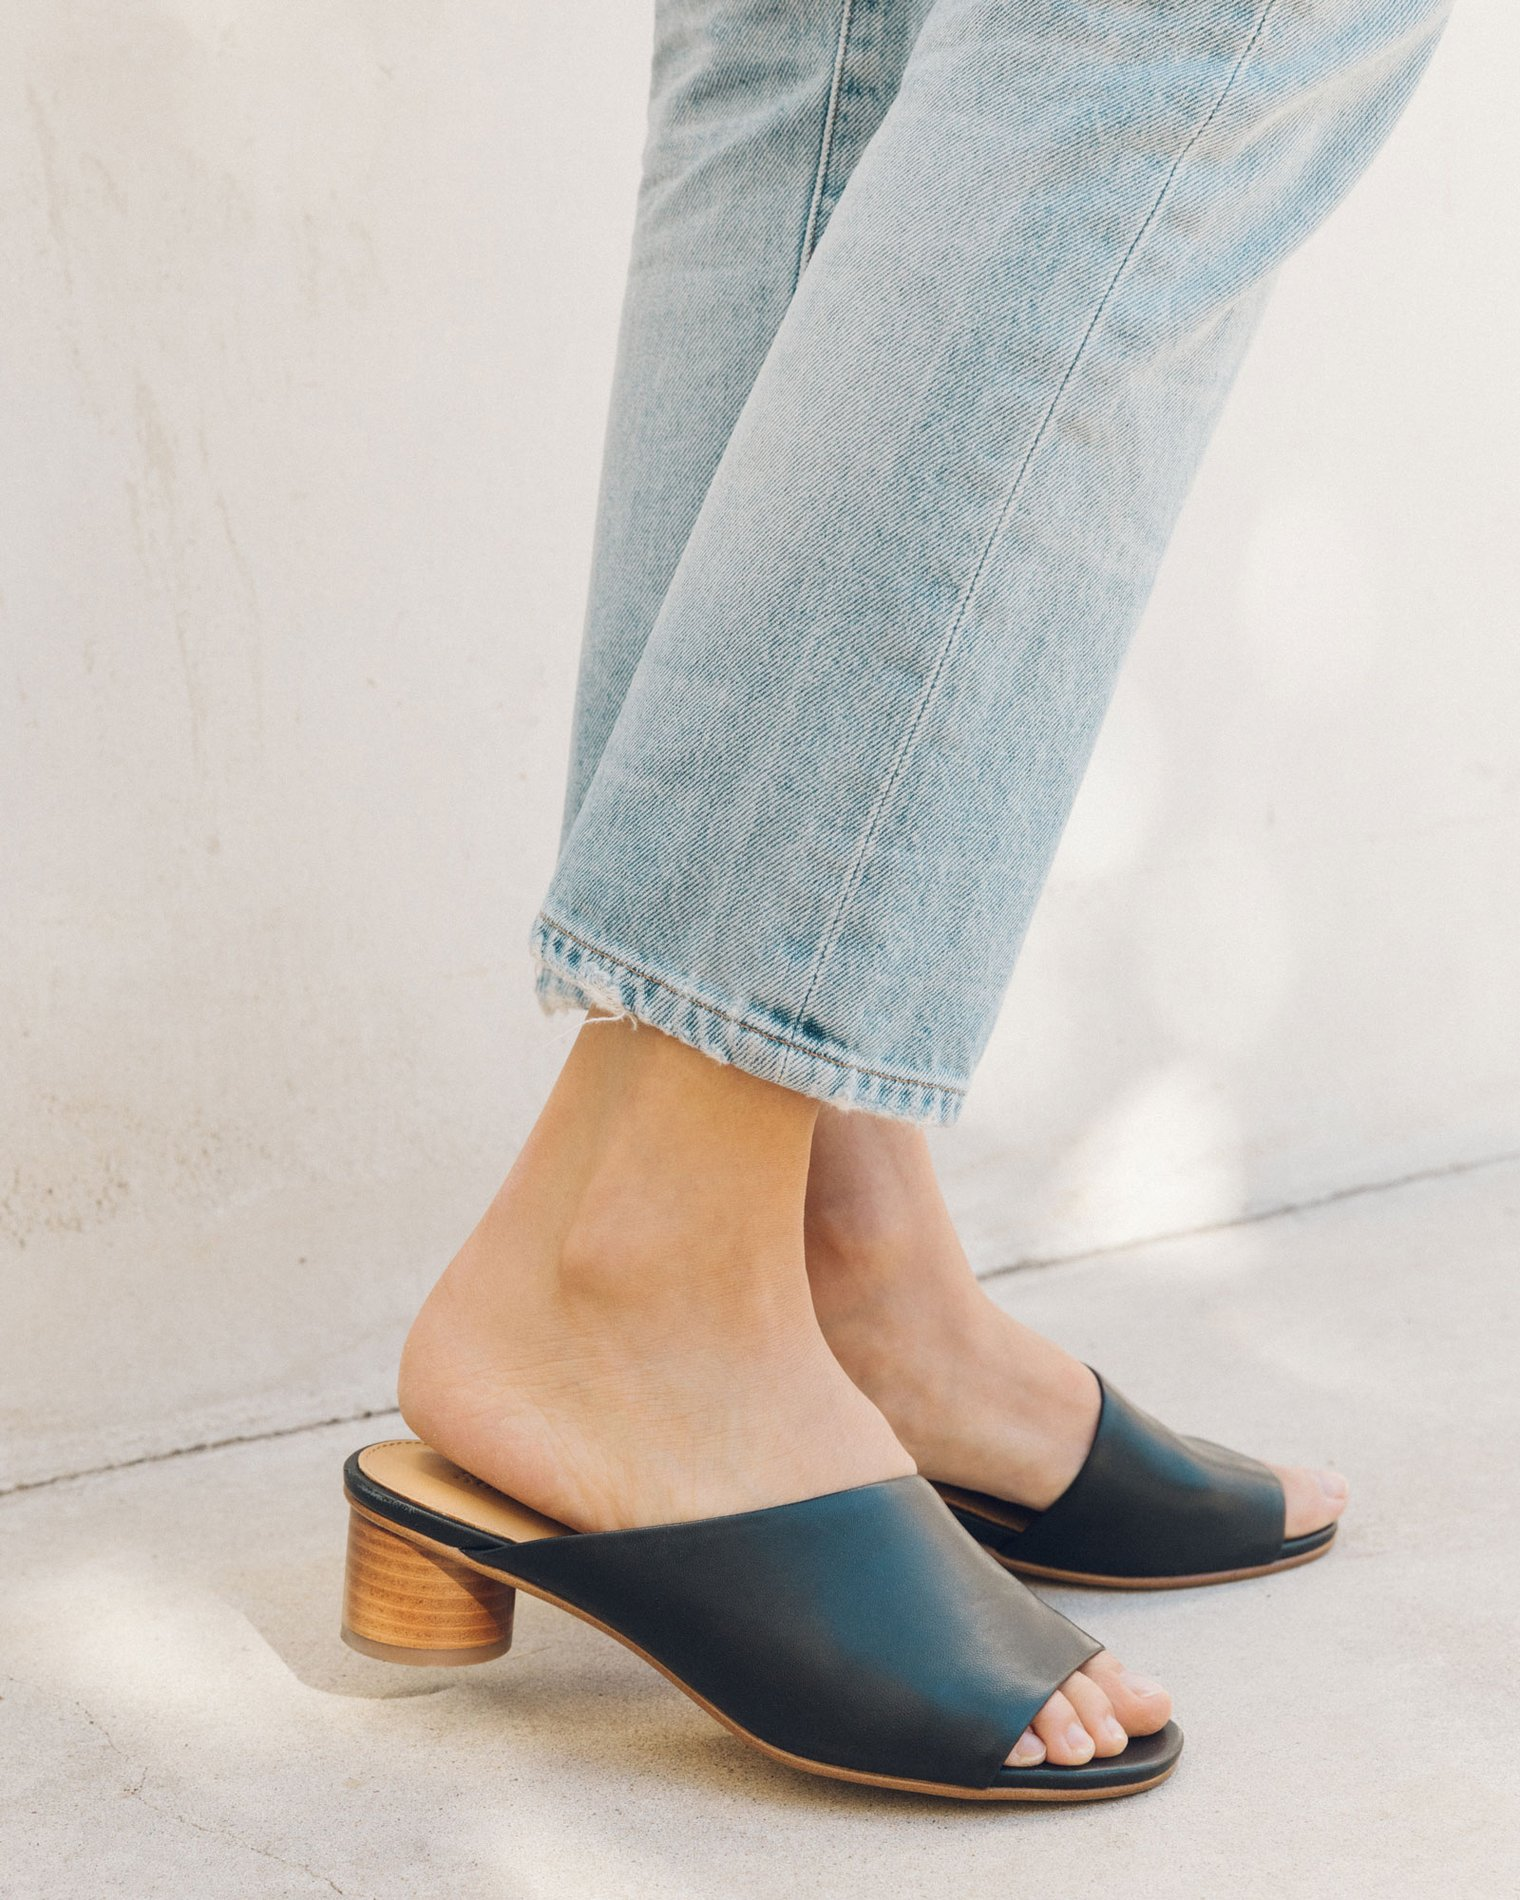 Black leather mule with wooden heel from Soludos